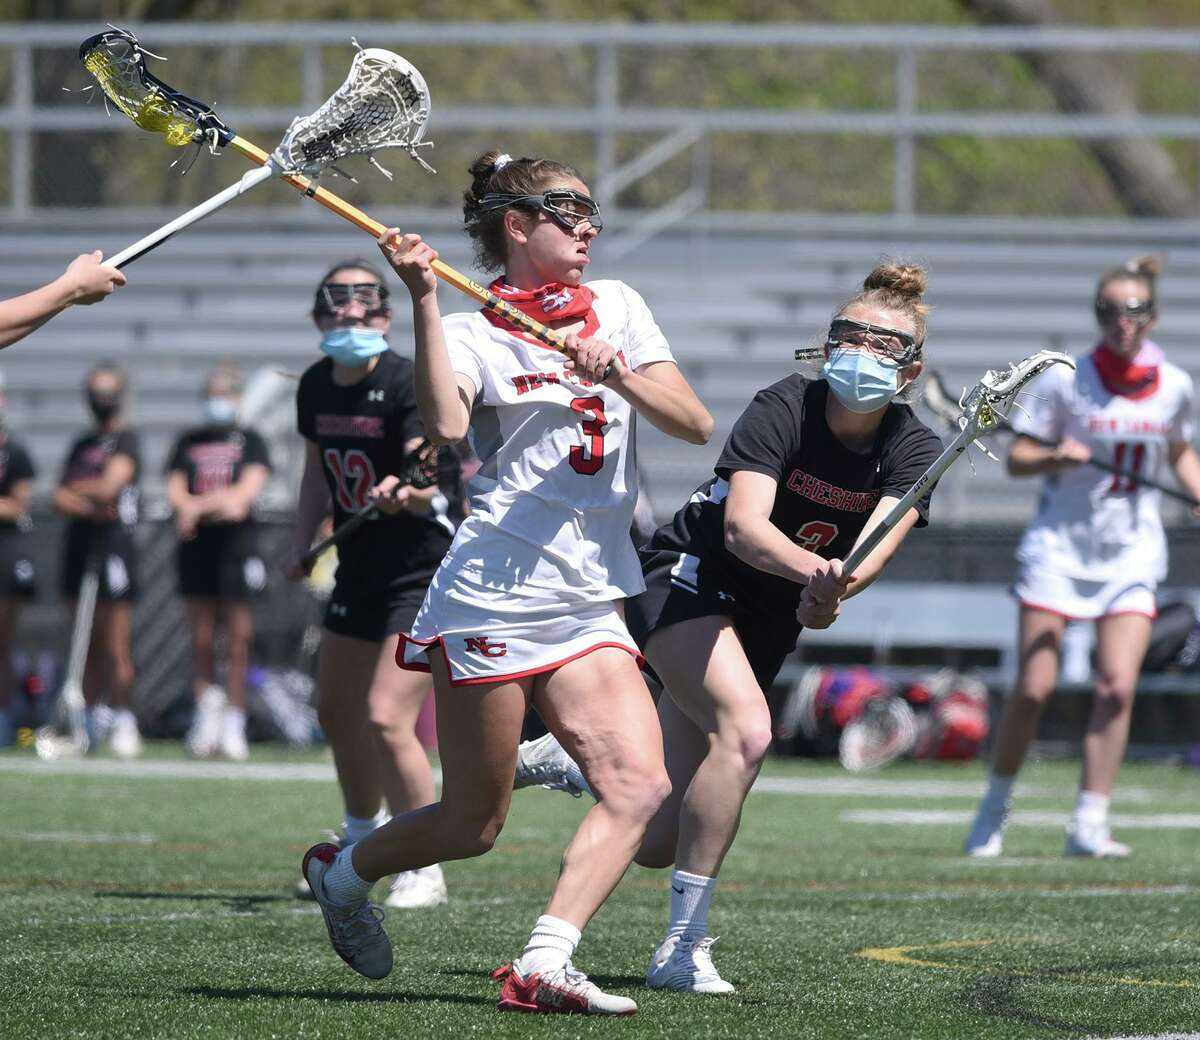 New Canaan's Dillyn Patten (3) lines up for a shot while Cheshire's Hannah Merritt (3) defends during a girls lacrosse game at Dunning Field on Saturday.